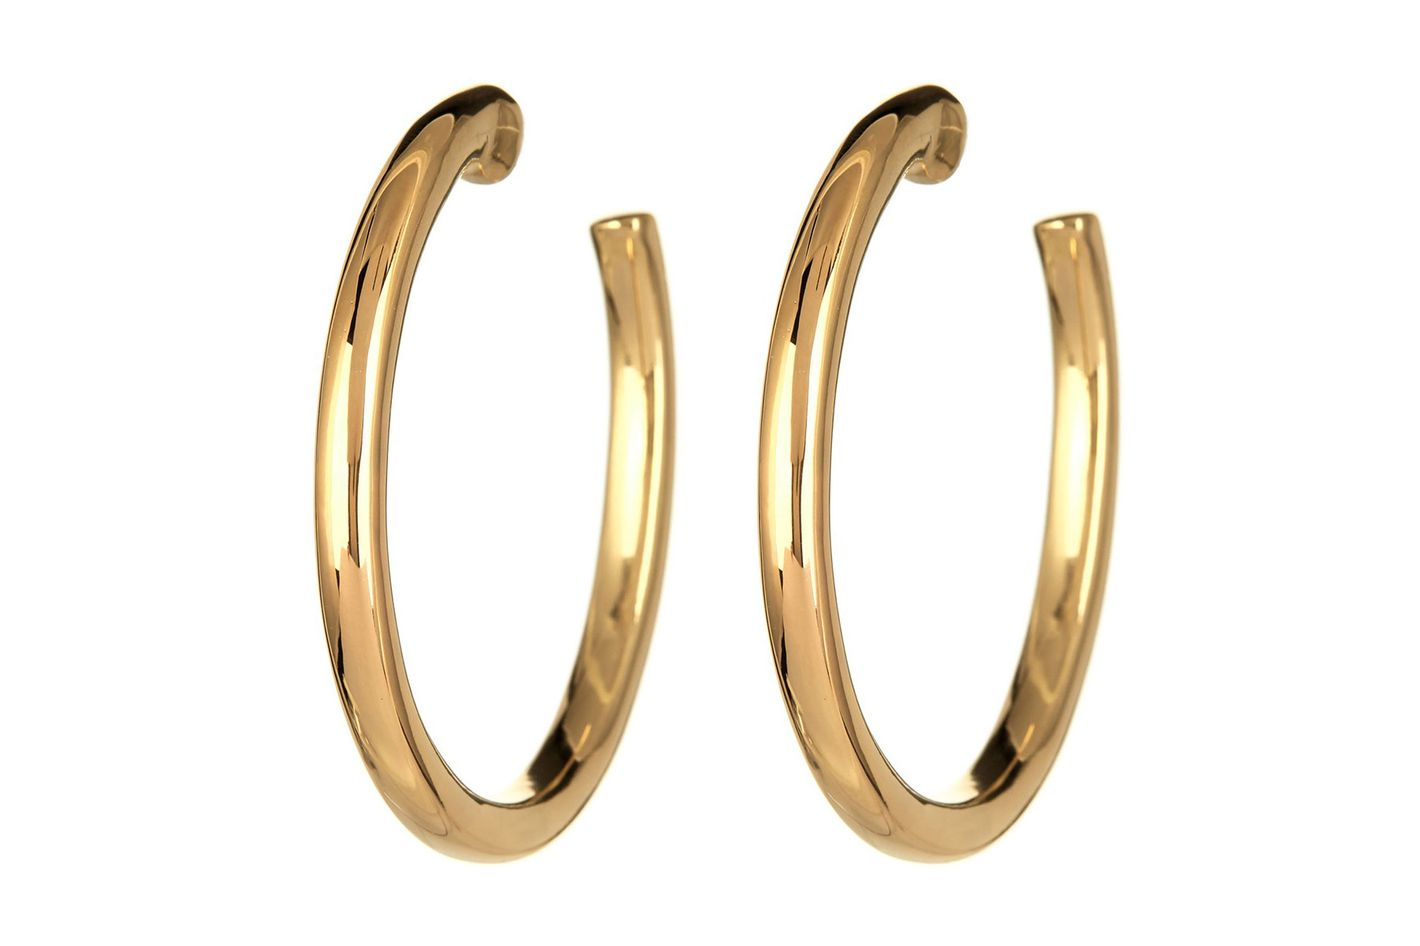 golden earrings earing casual new earring euphorium fashion zircon ring rose color product round jewelry hoop gold